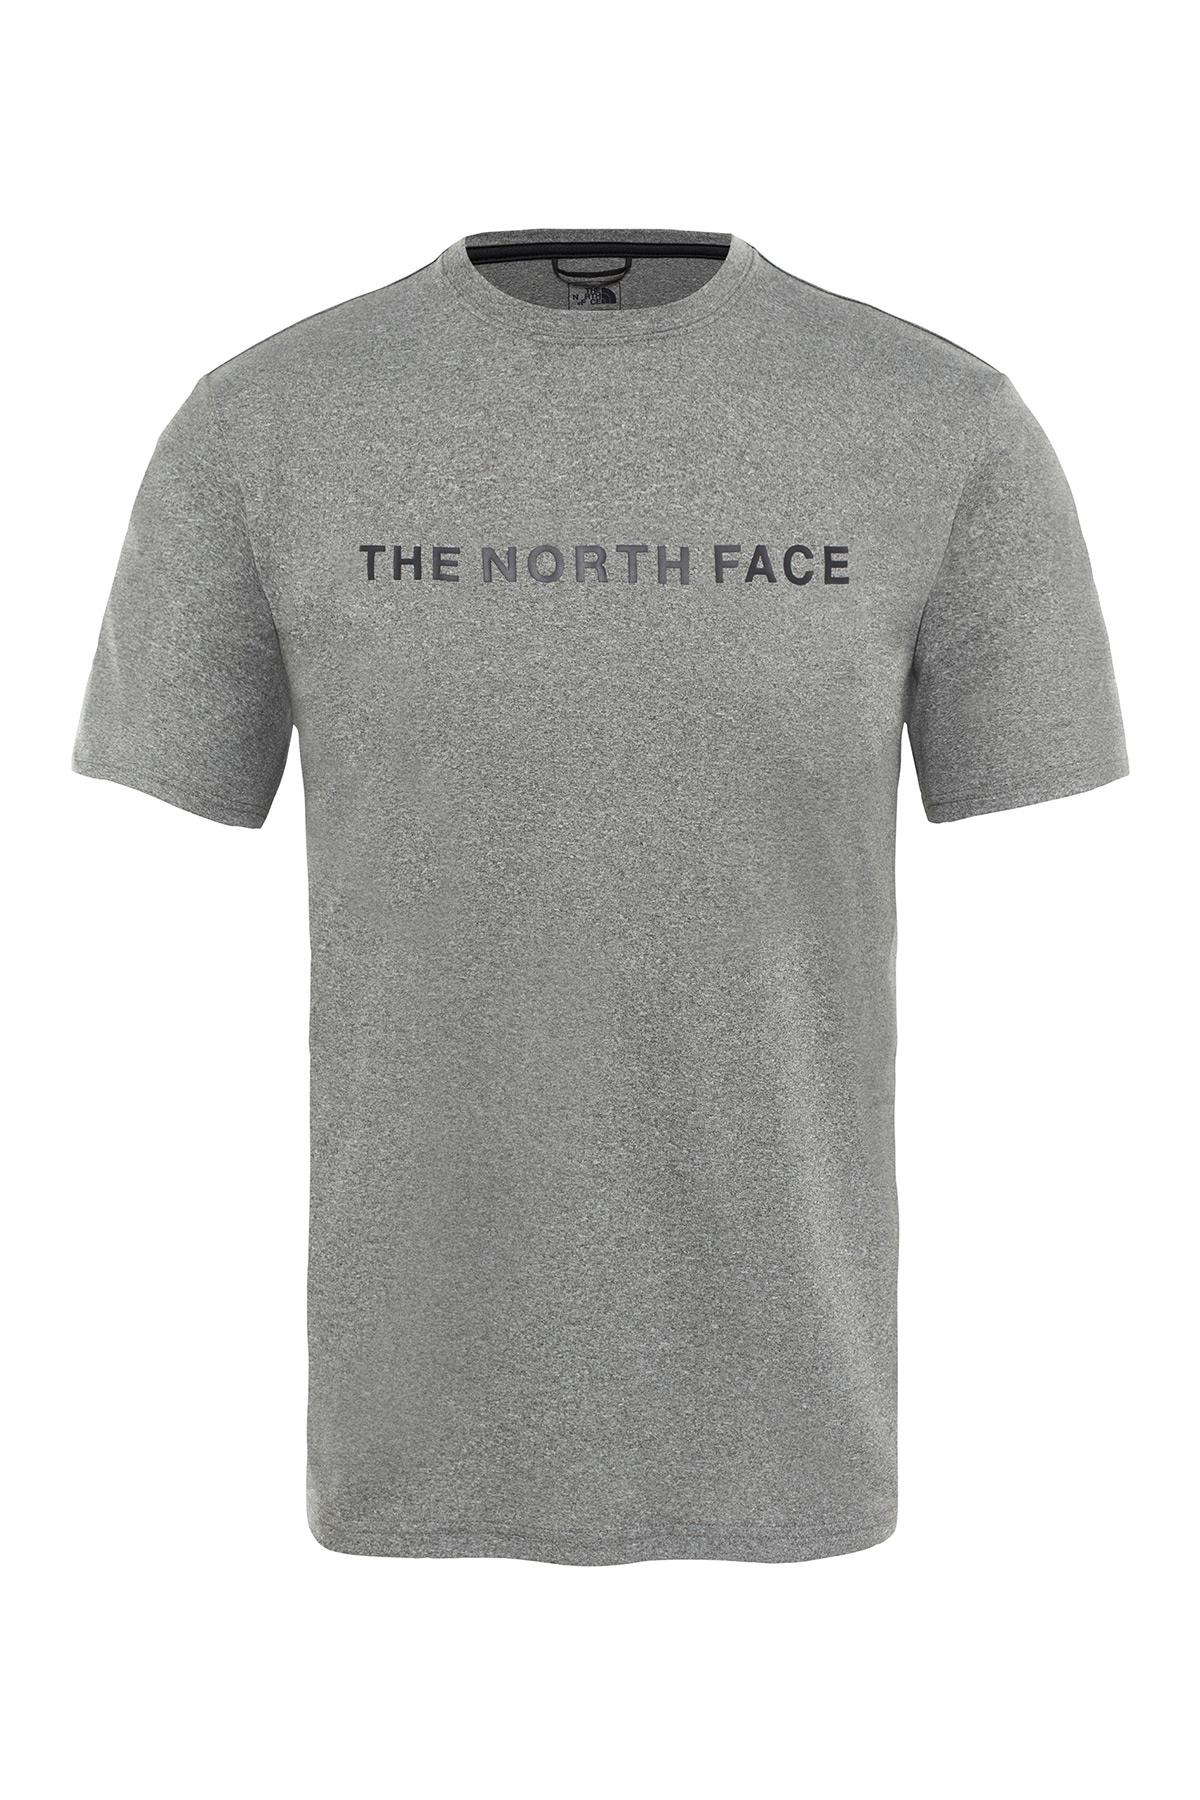 The Northface Erkek Train N Logo S/S Tee - Eu T93Uwvdyy Tişört